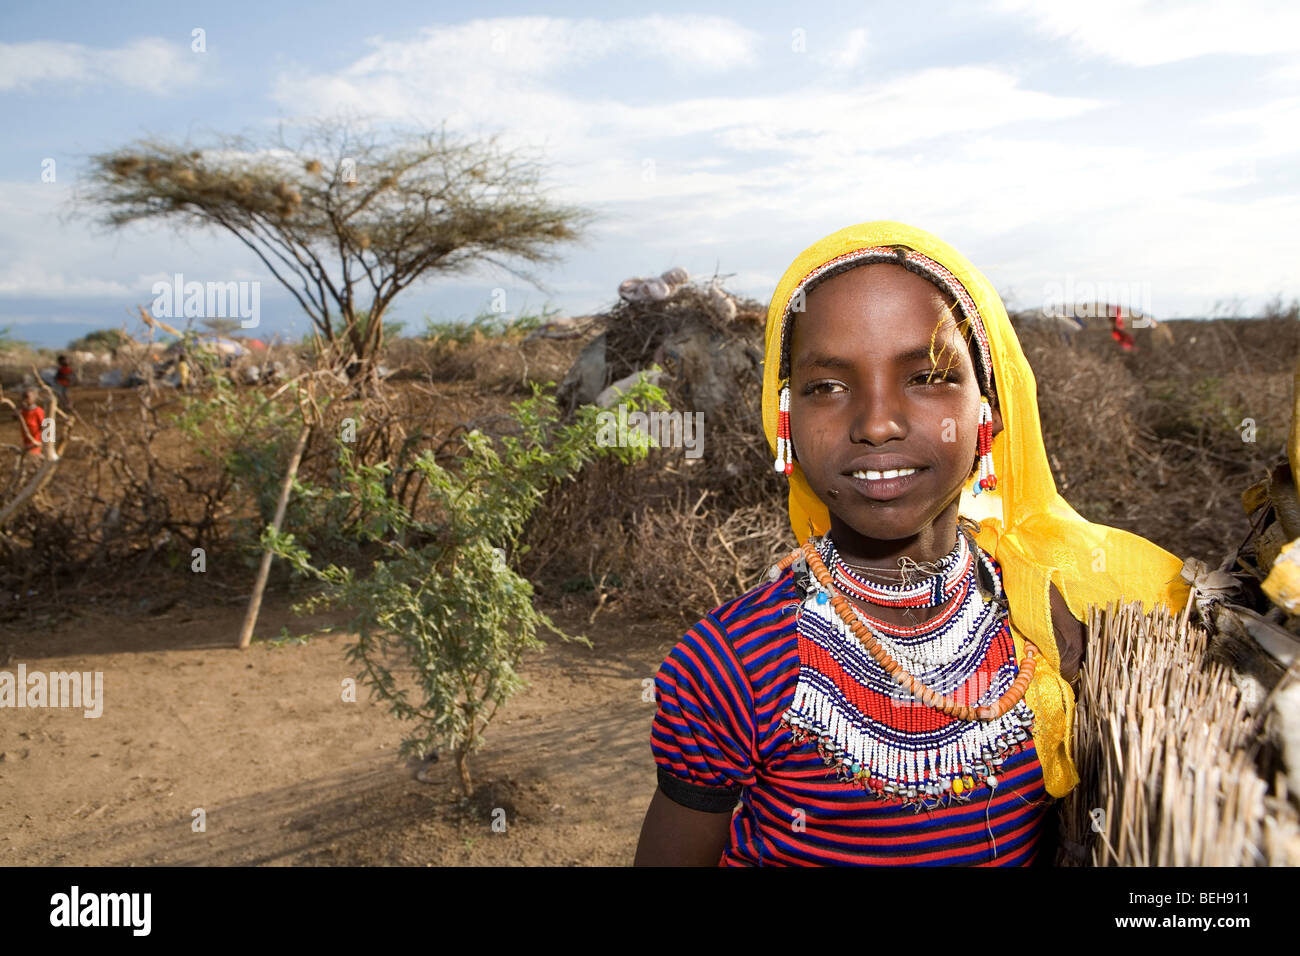 Portrait of a villager in Awash, Afar region in Ethiopia - Stock Image